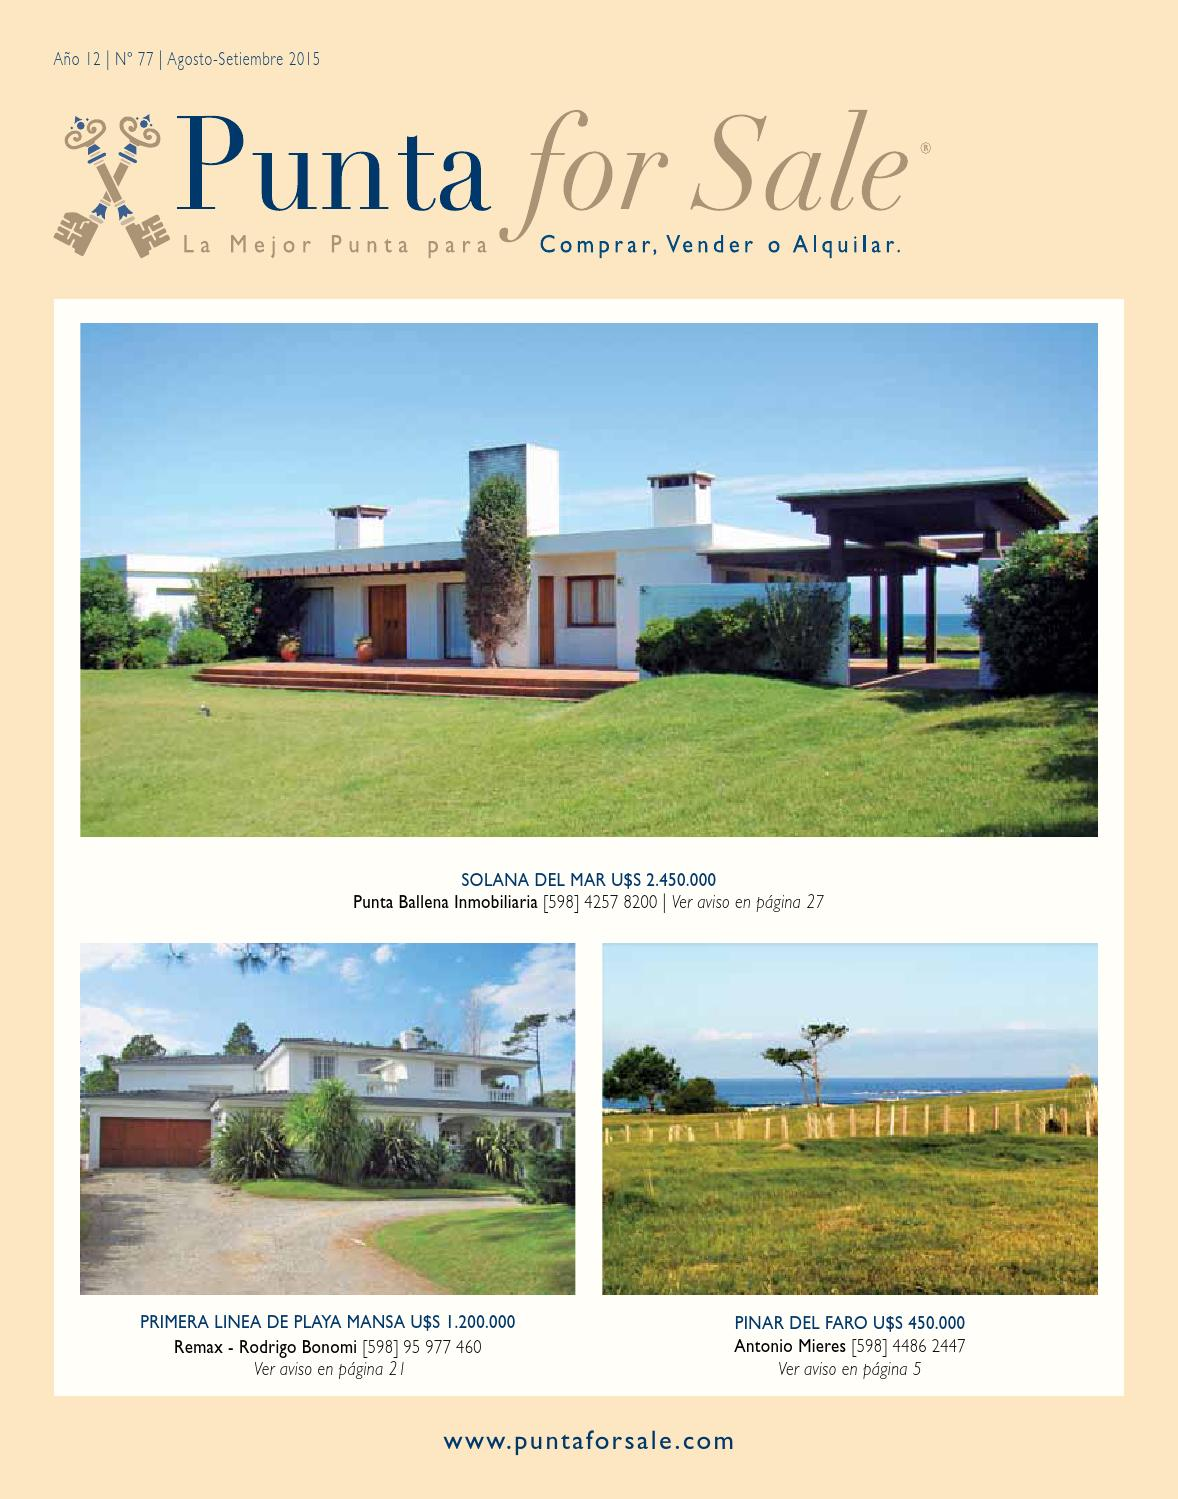 Revista de Real Estate Punta For Sale, edición # 77 Agosto/Setiembre 2015